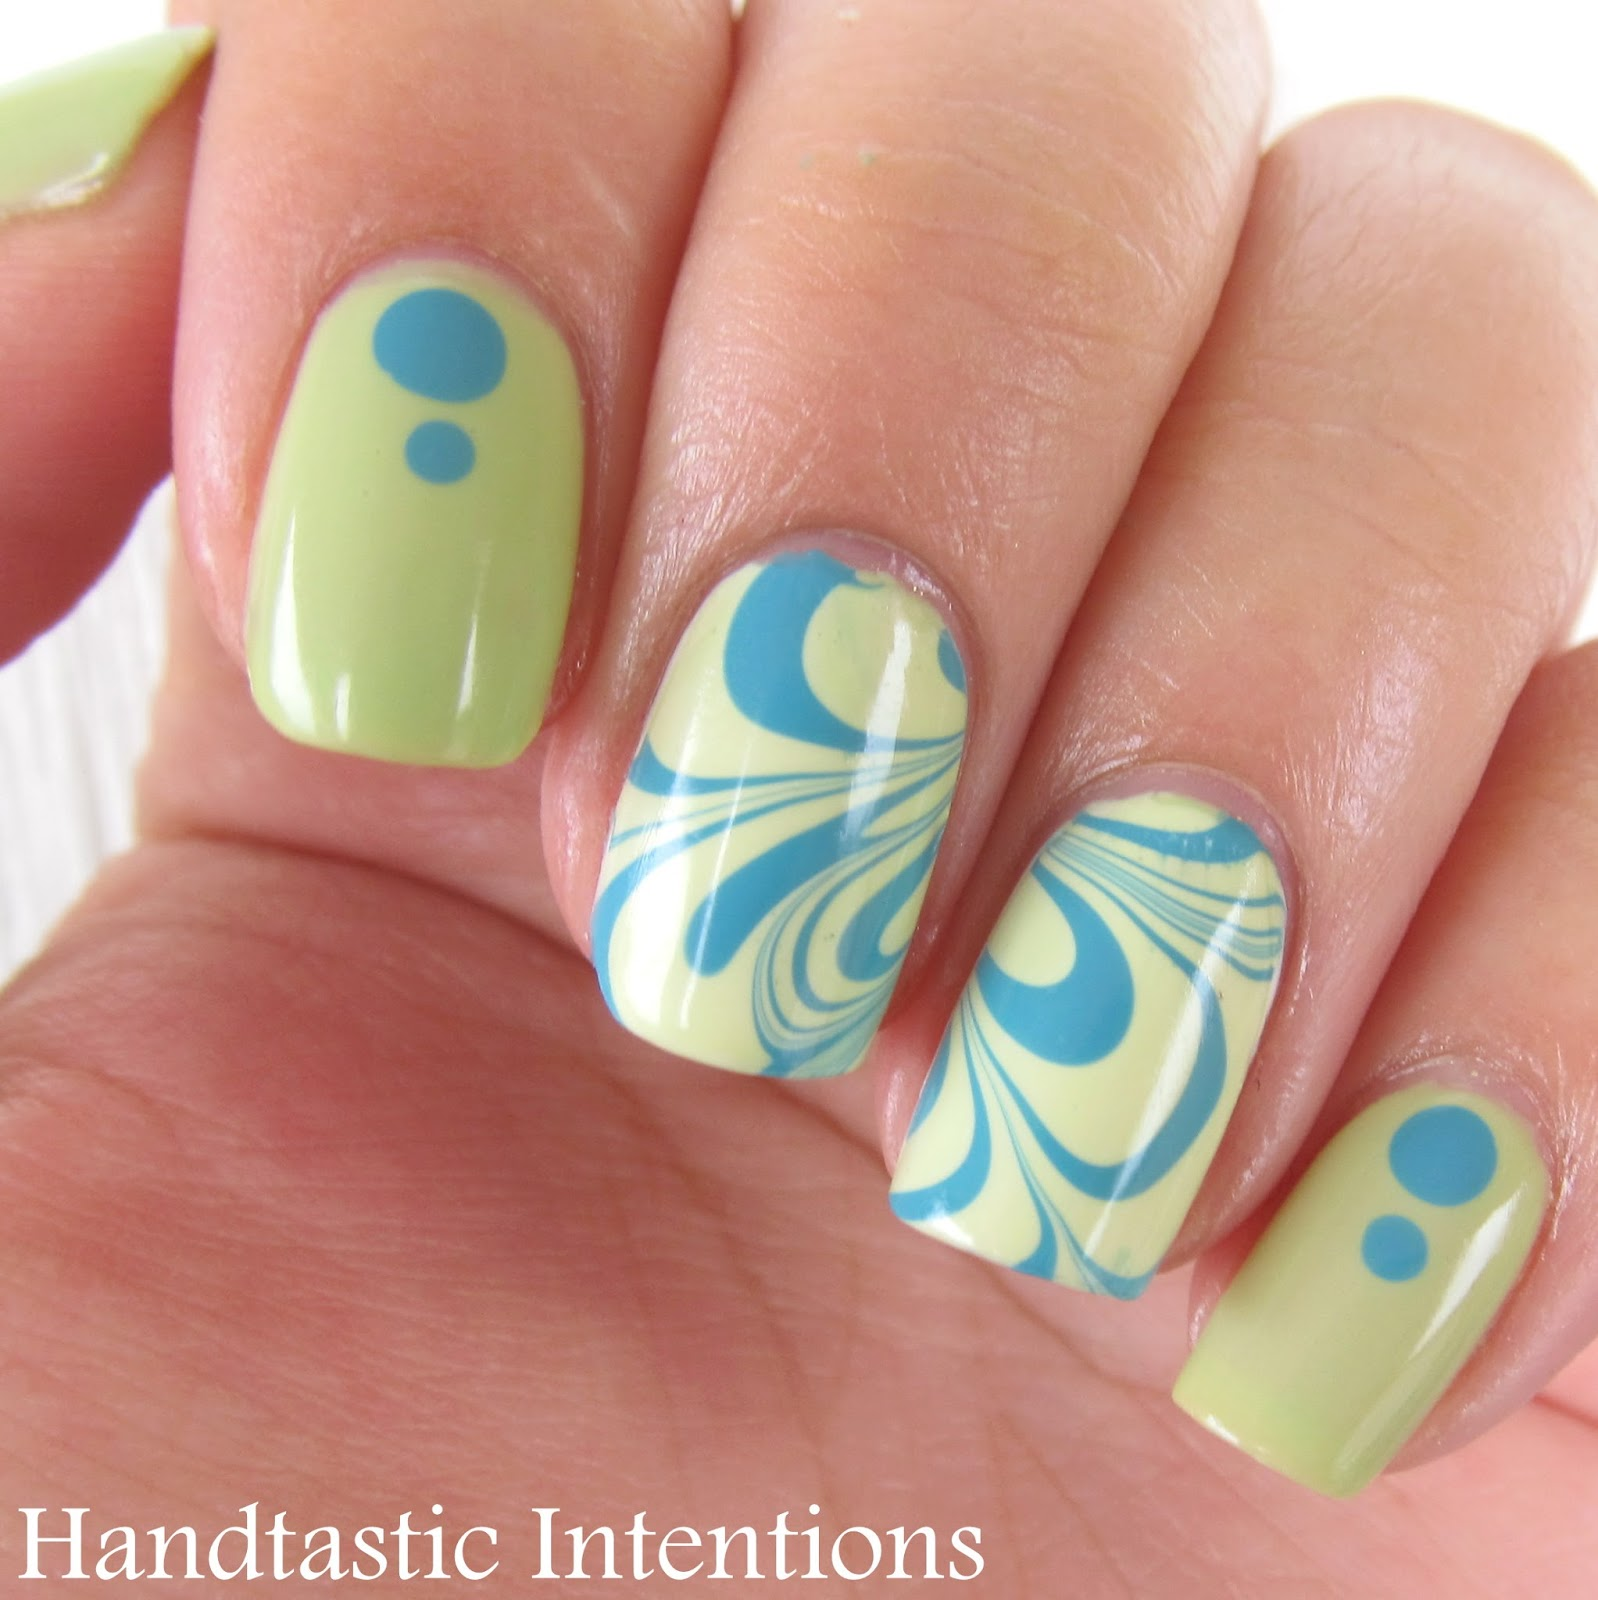 Marble Nail Art: Handtastic Intentions: Nail Art: Spring Inspired Water Marble